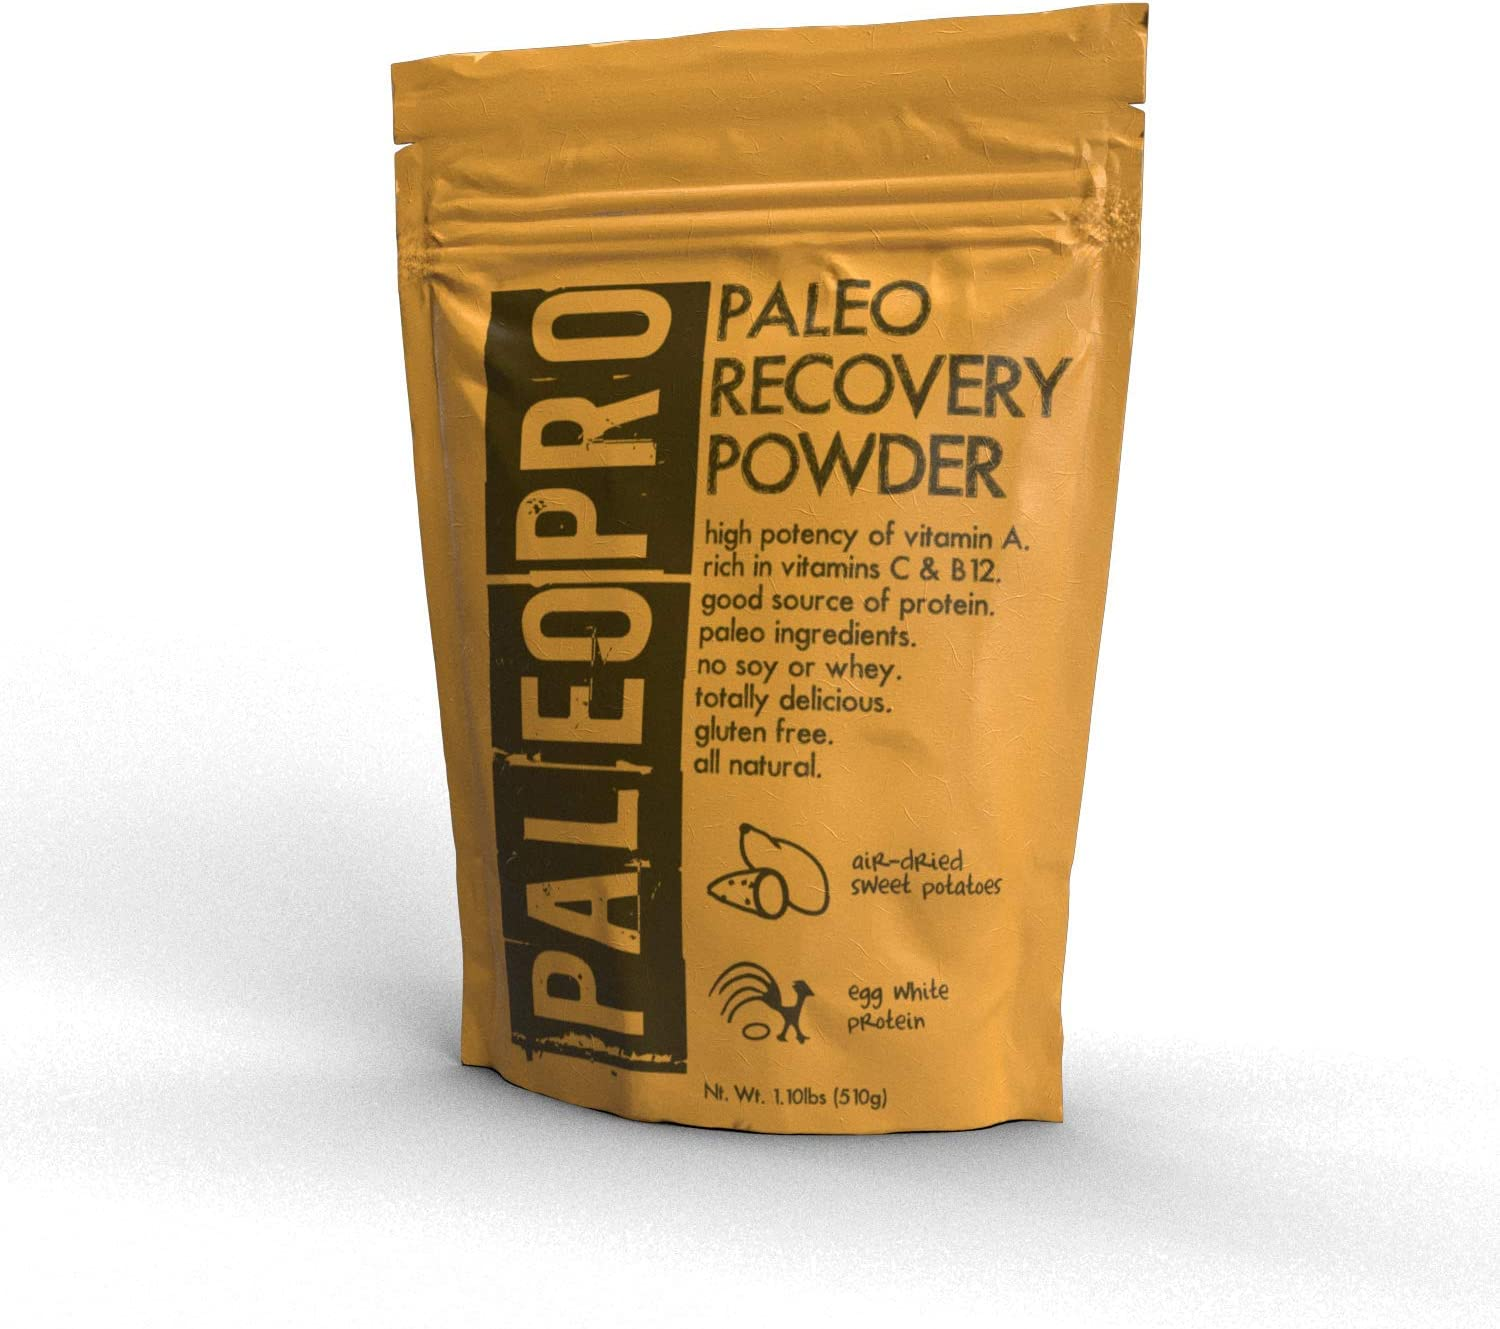 PaleoPro – Paleo Recovery Powder All Natural No Soy No Whey Gluten Free Paleo Diet 1.1lb 509g – Sweet Potato